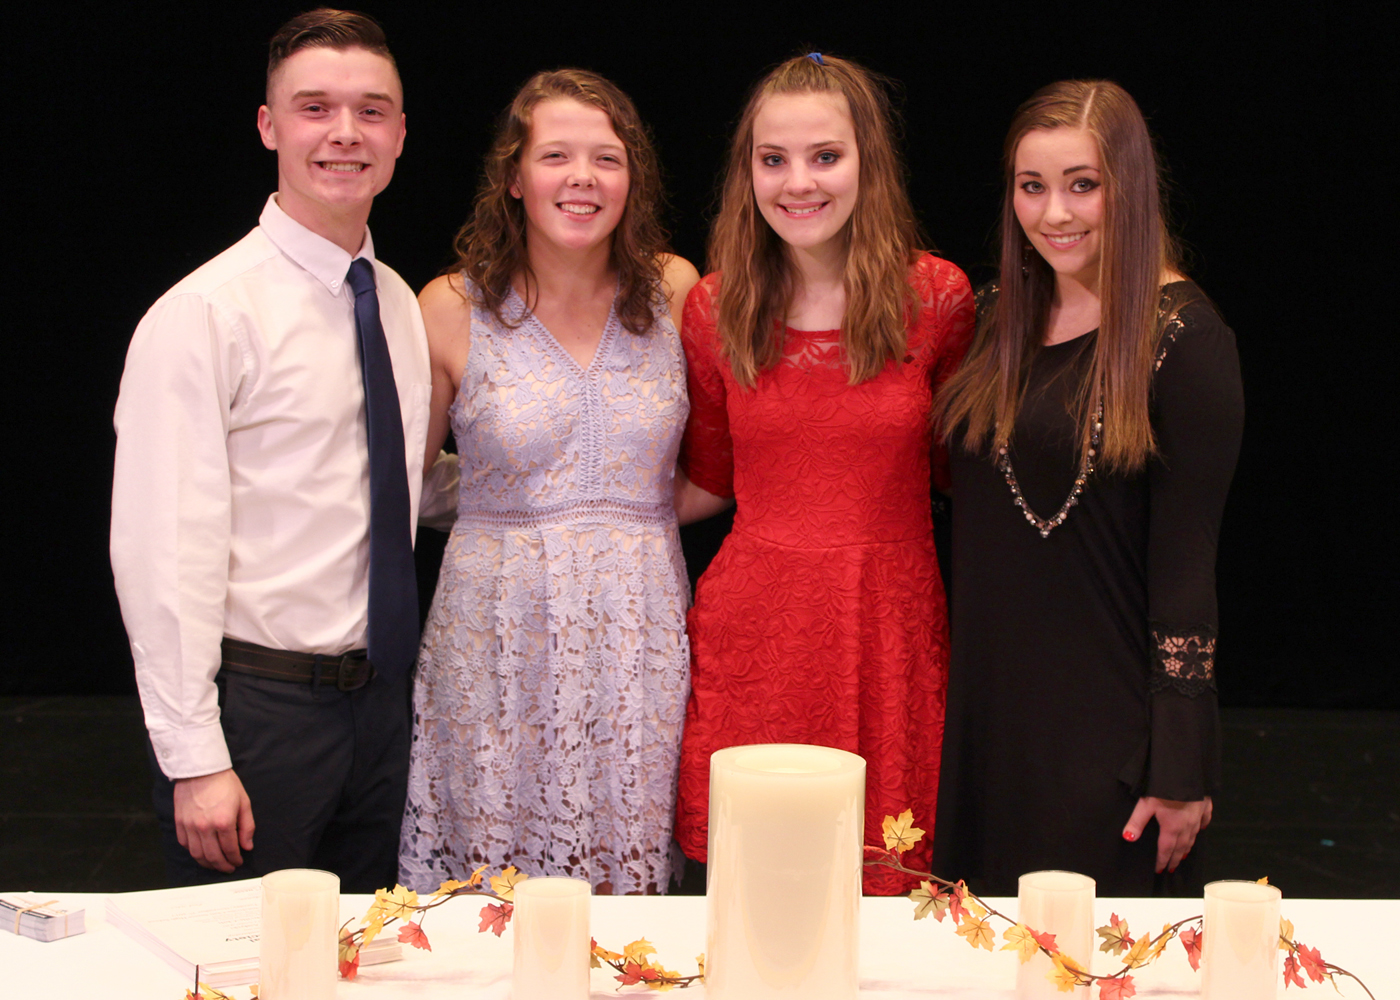 NHS Officers (l to r) Jon Sanfratello (President); Quinn Metcalfe (Vice President); Maria Esposito (Secretary) and Jenna Prewasnicak (Treasurer). Provided photo